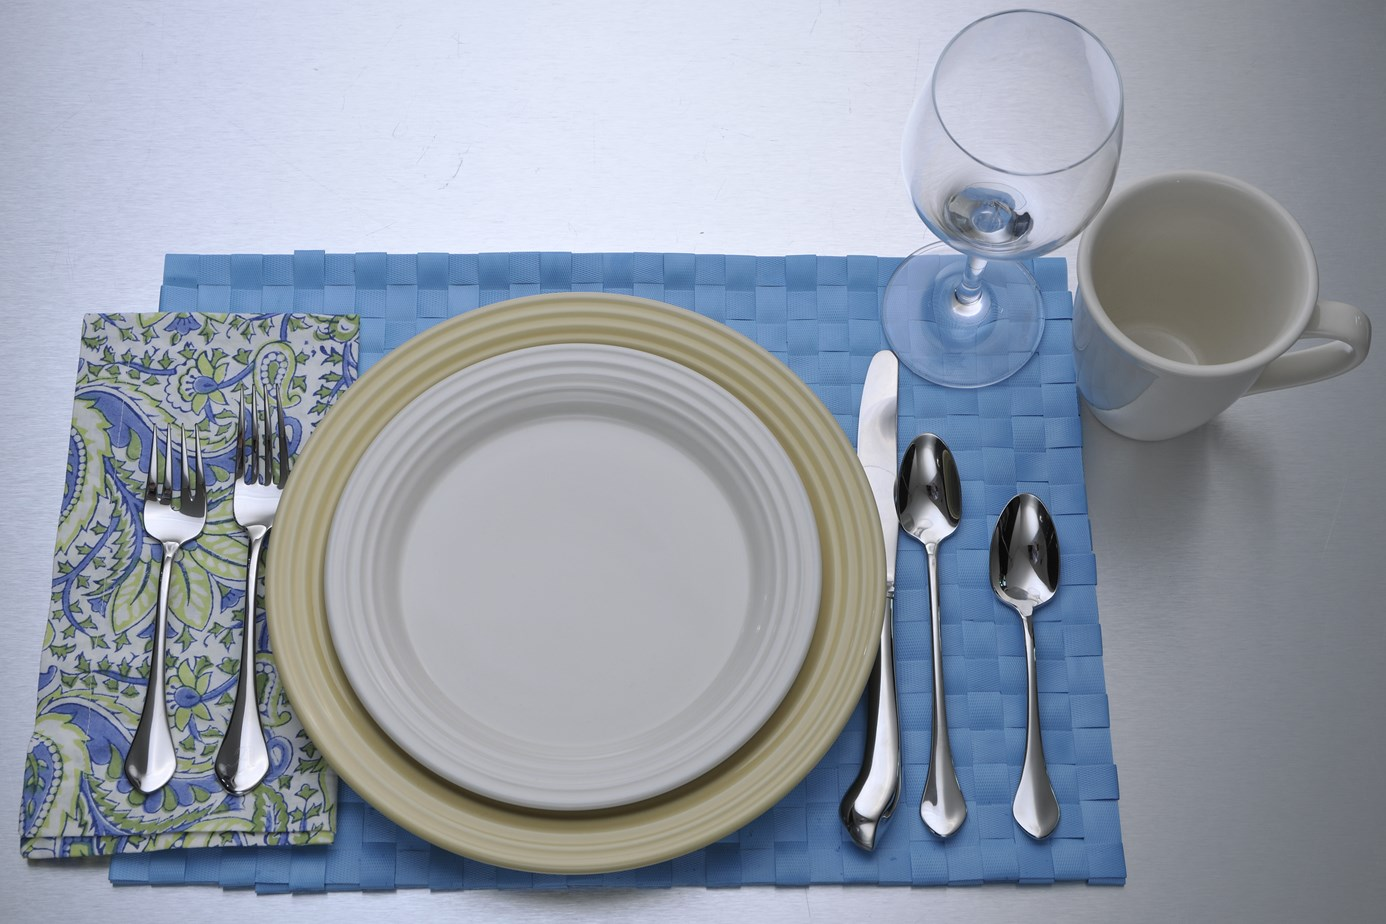 Choice morsels good eating monday table setting etiquette for Table th right